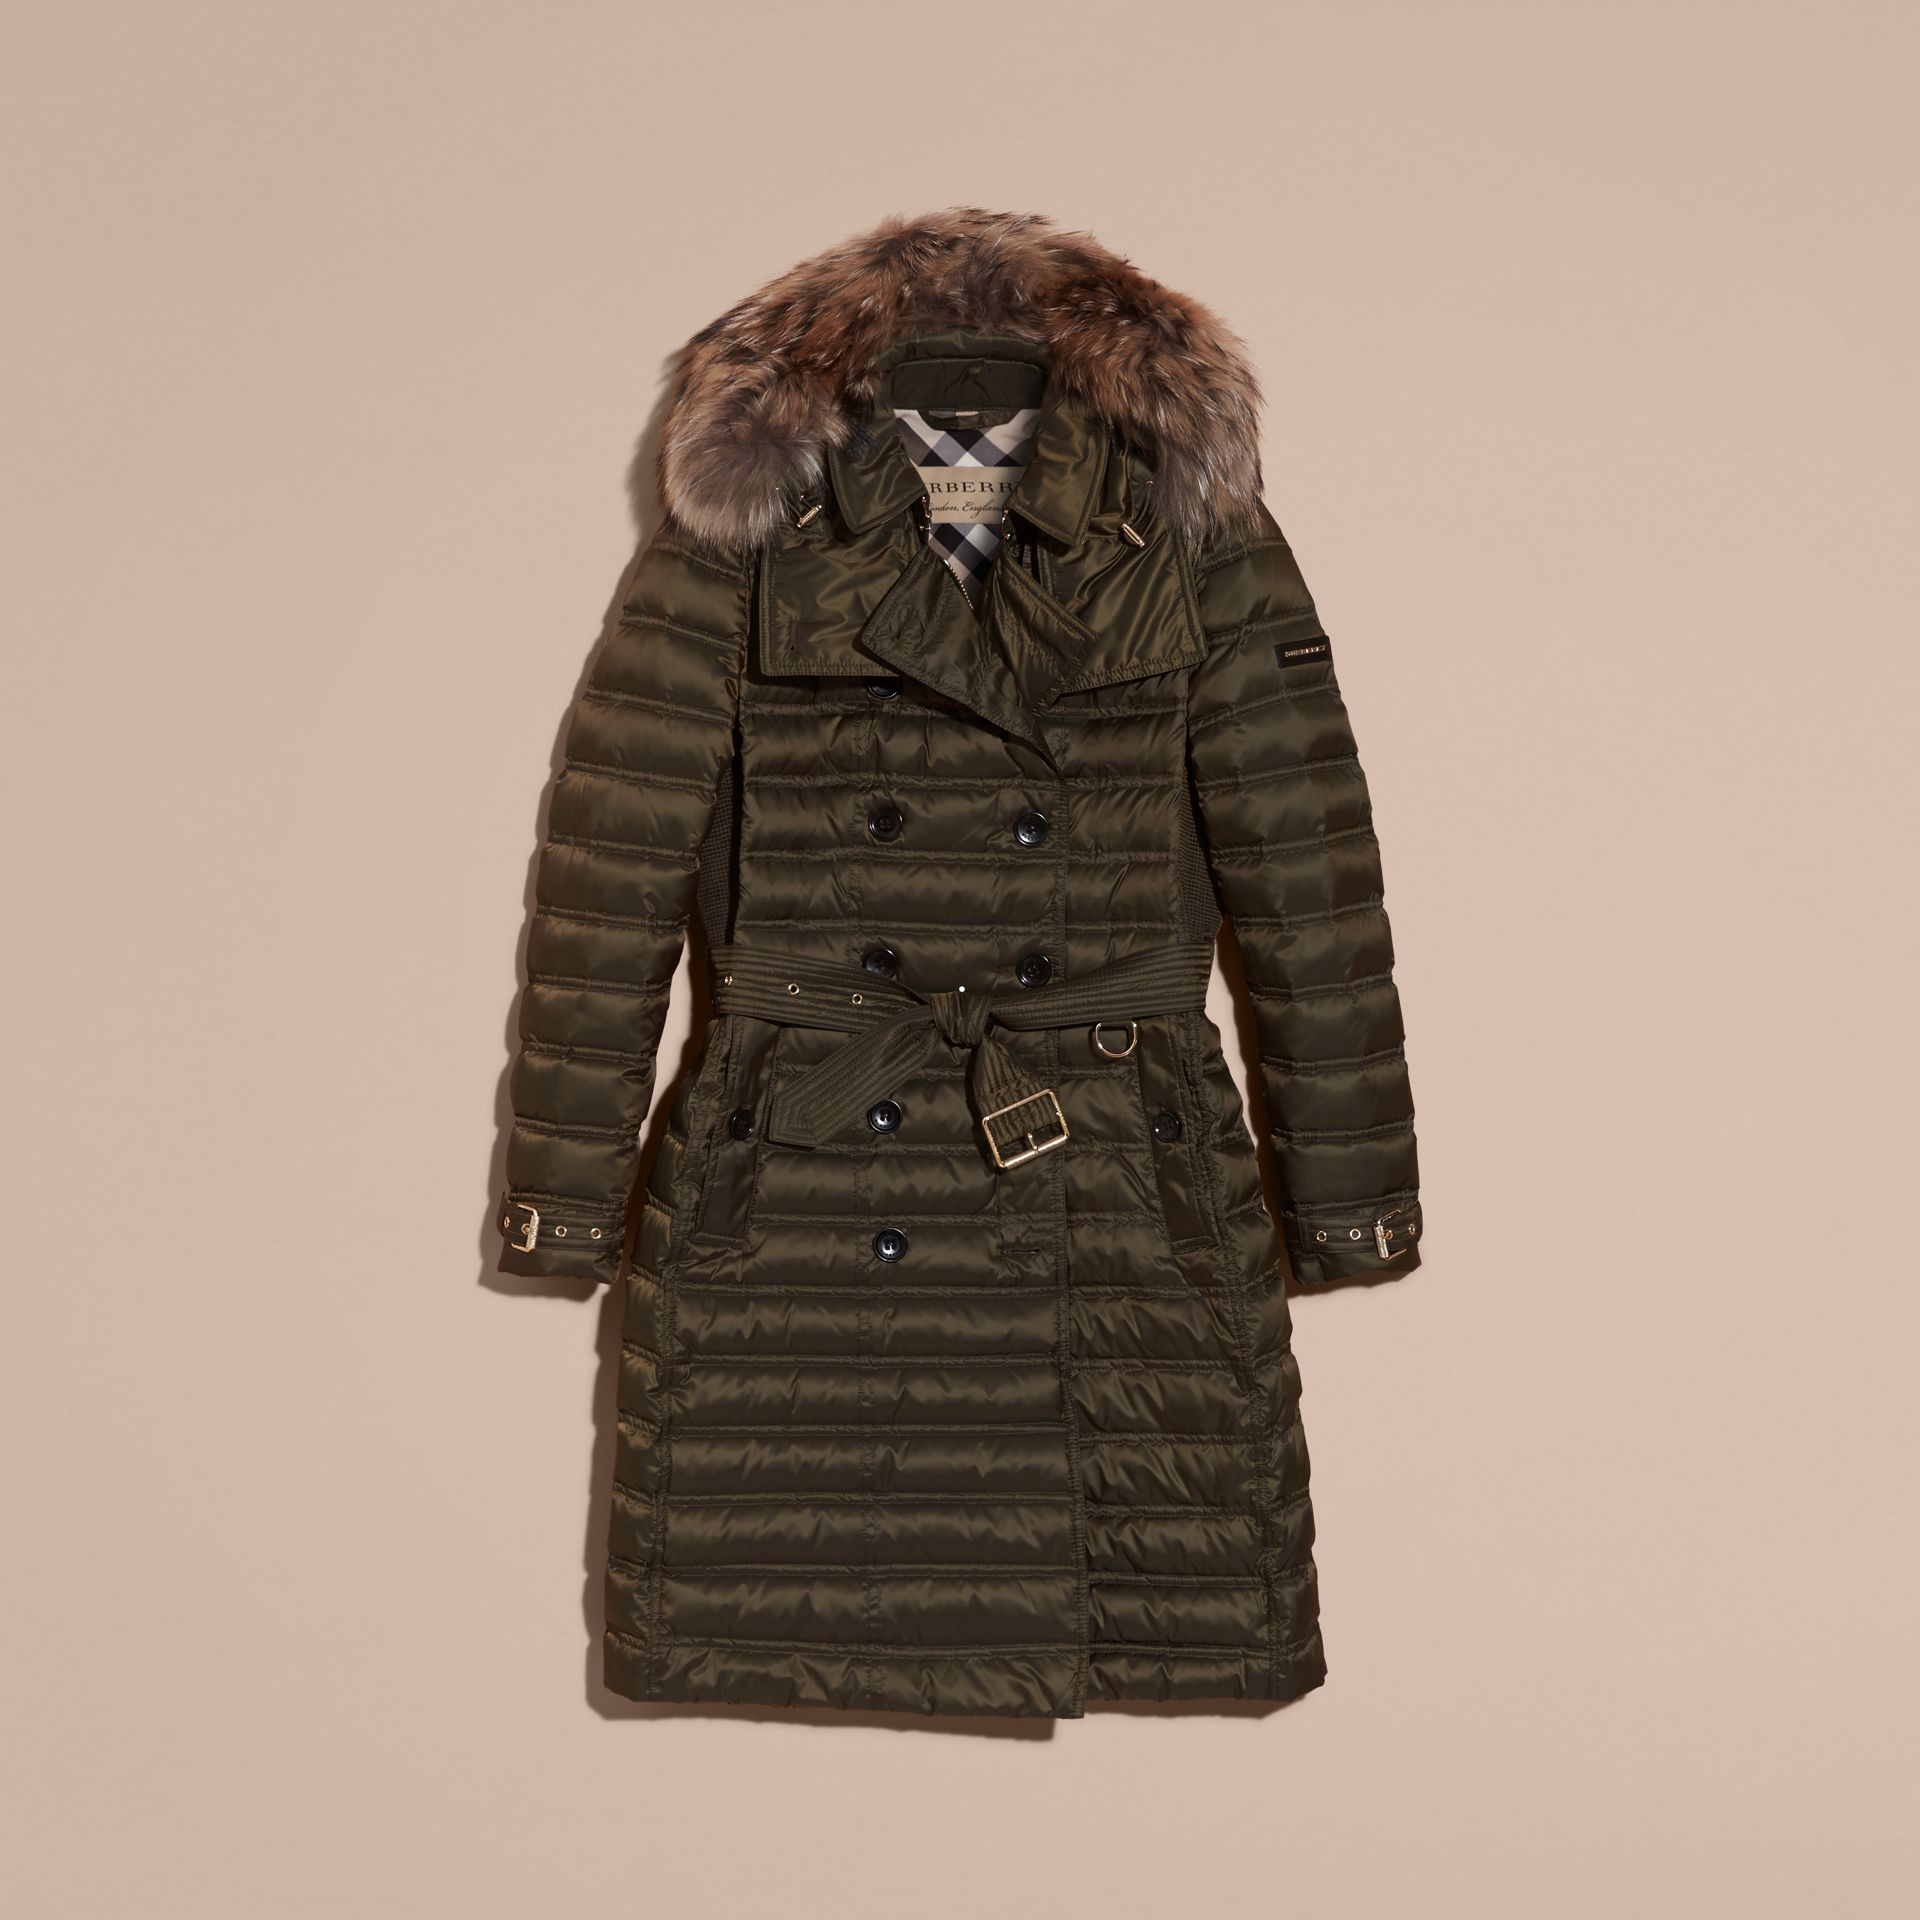 Dark olive Down-Filled Puffer Coat with Fur Trim Dark Olive - gallery image 4